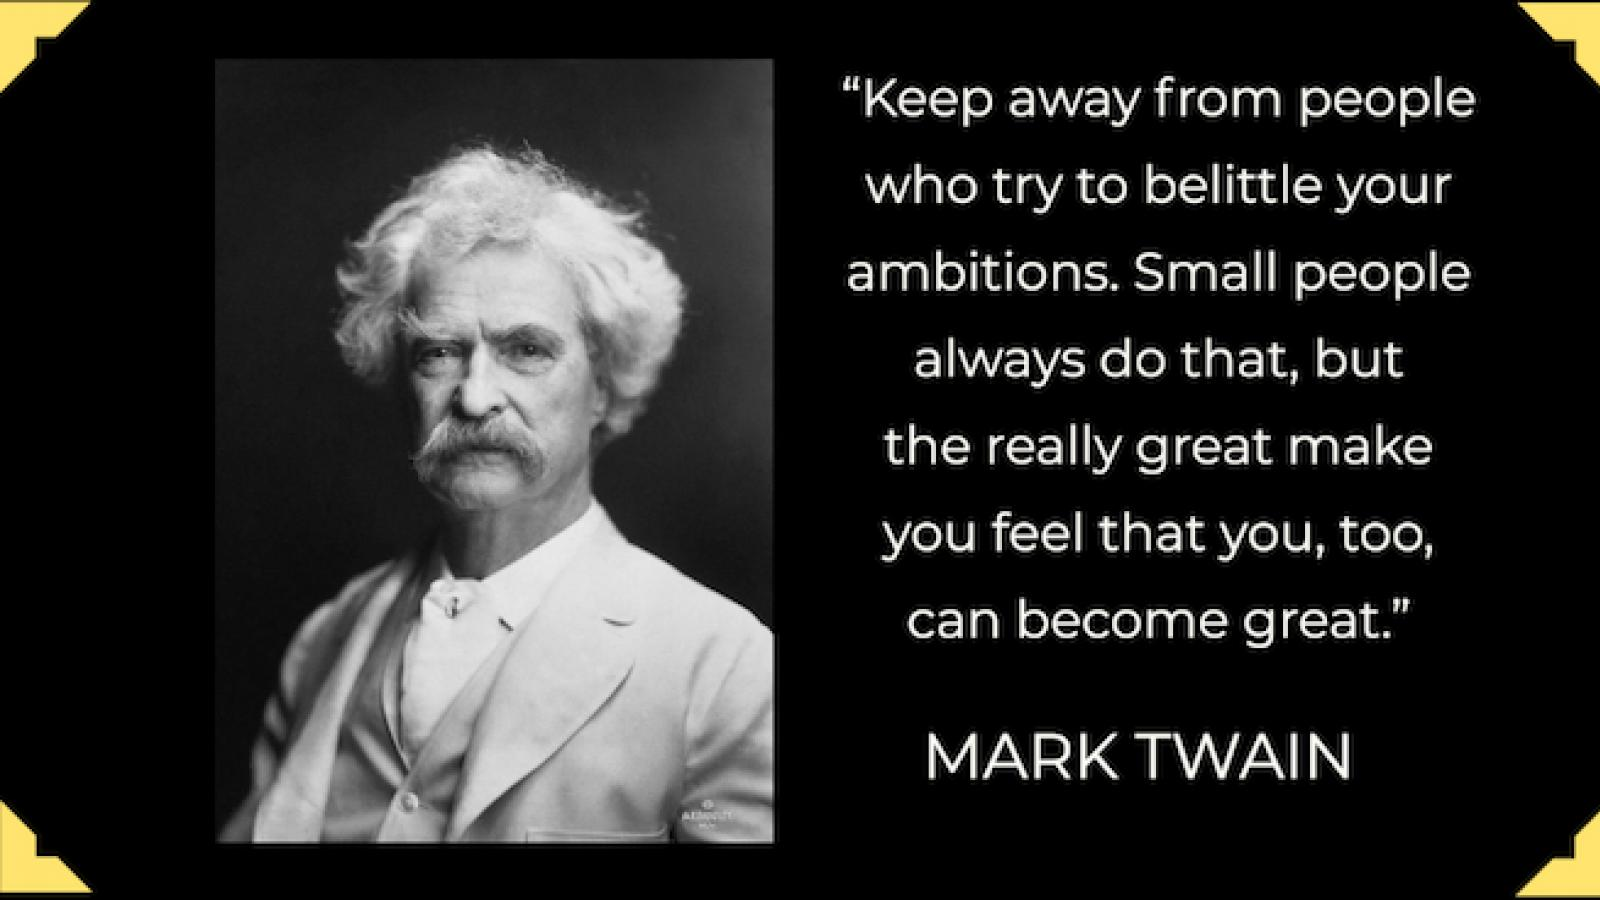 photo of Mark Twain with quote